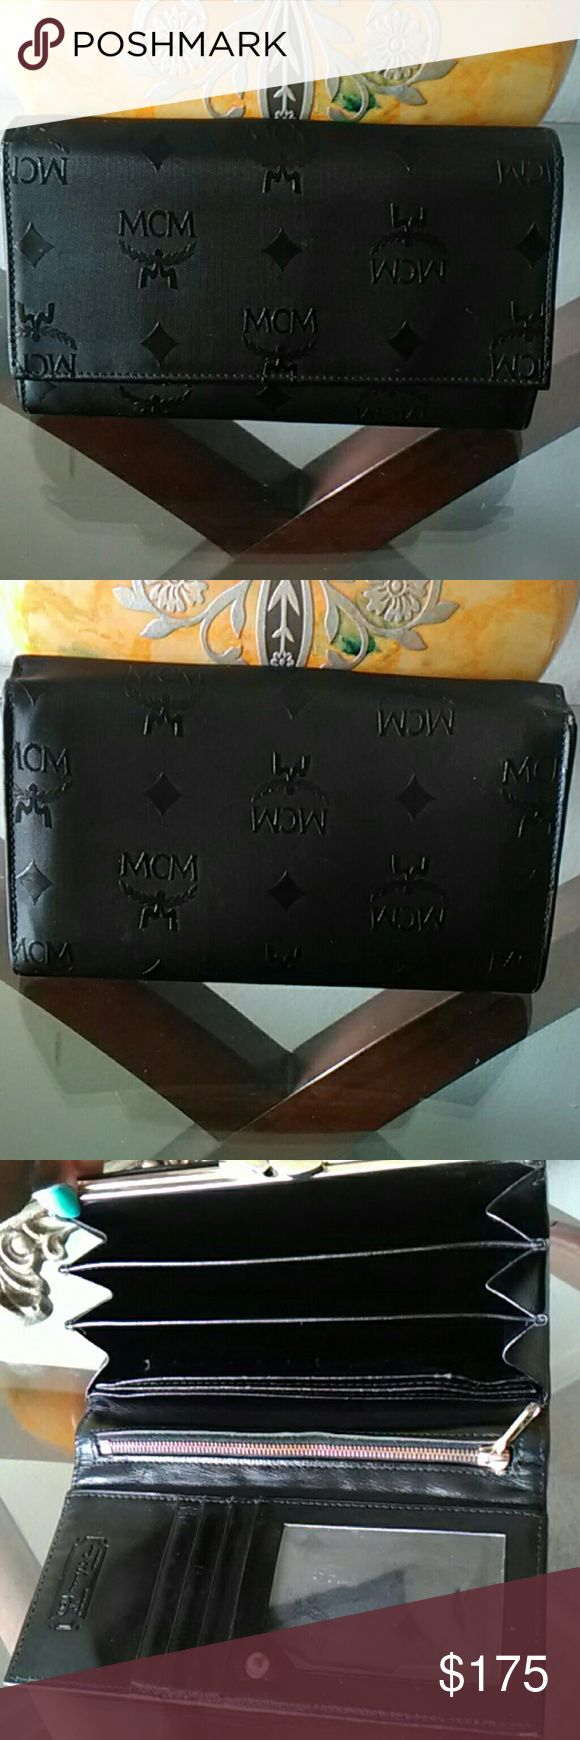 MCM Authentic Black Long Wallet Good preowned condition. Minor scuff around edges and peeling inside checkbook insert compartment. Numerous compartments for bills, and receipts. Kiss lock coin pocket and zipper pocket. MCM Bags Wallets